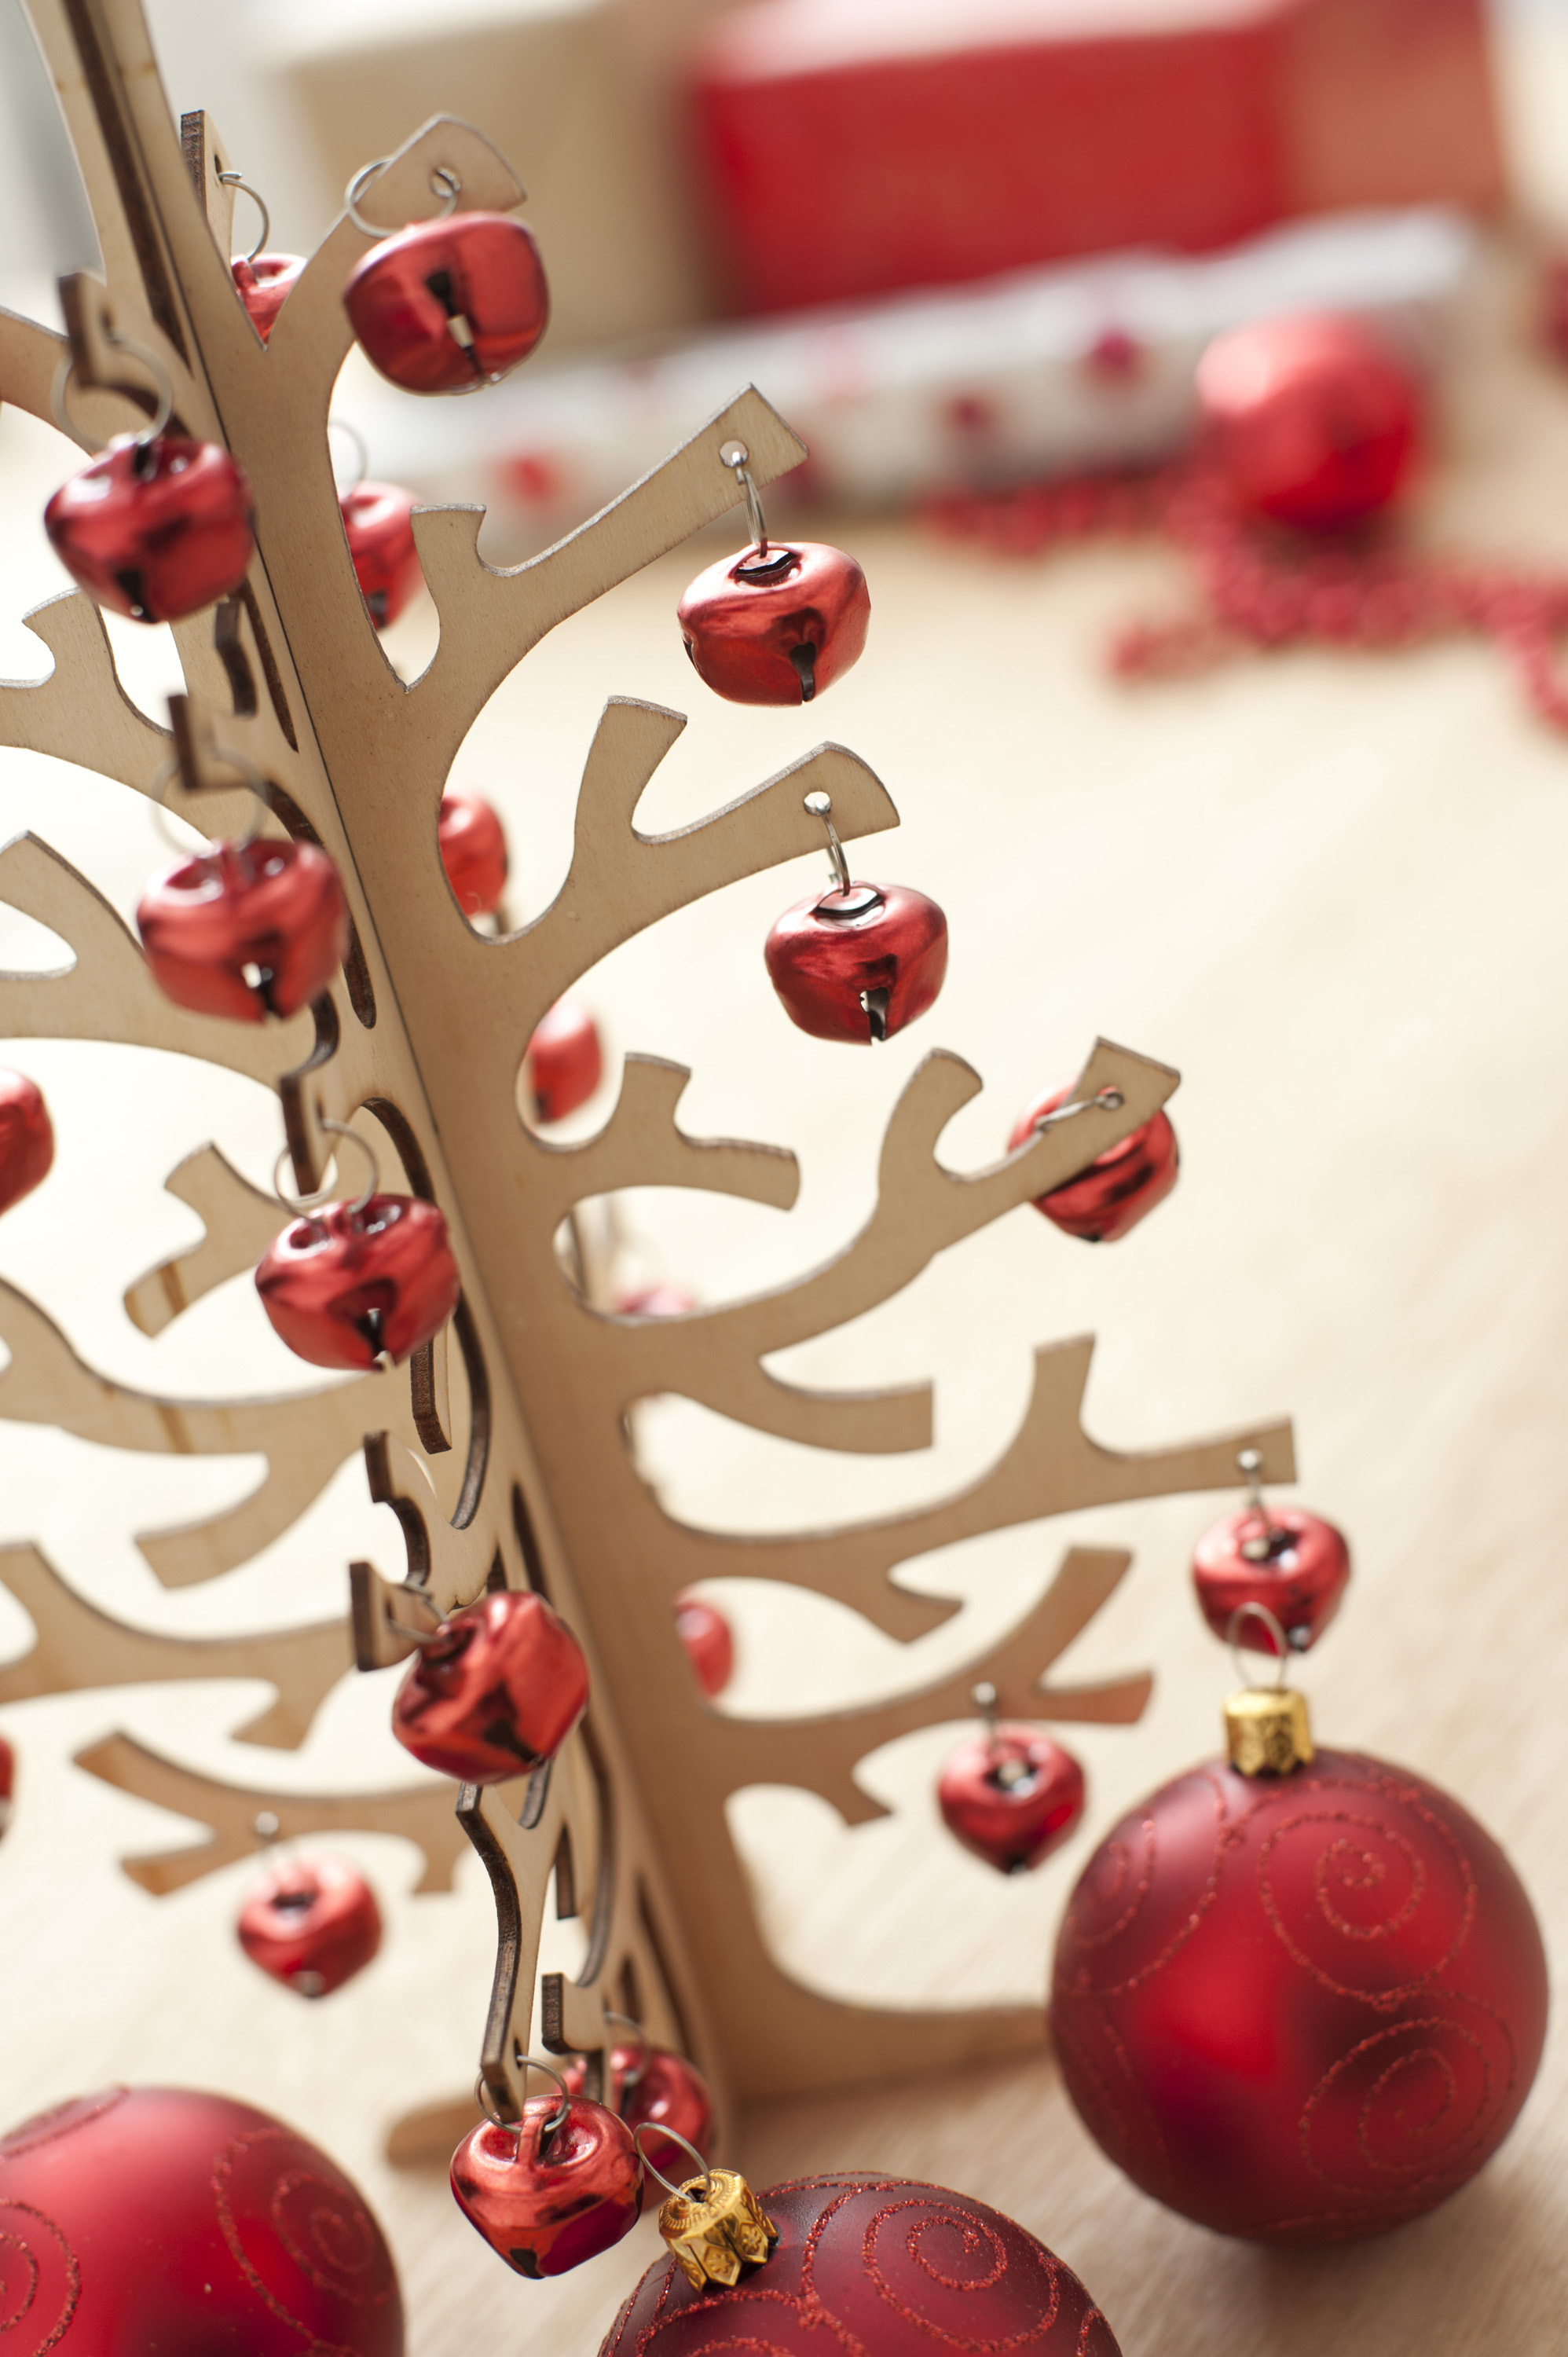 Close-up of wooden Christmas tree decorated with bright red garland